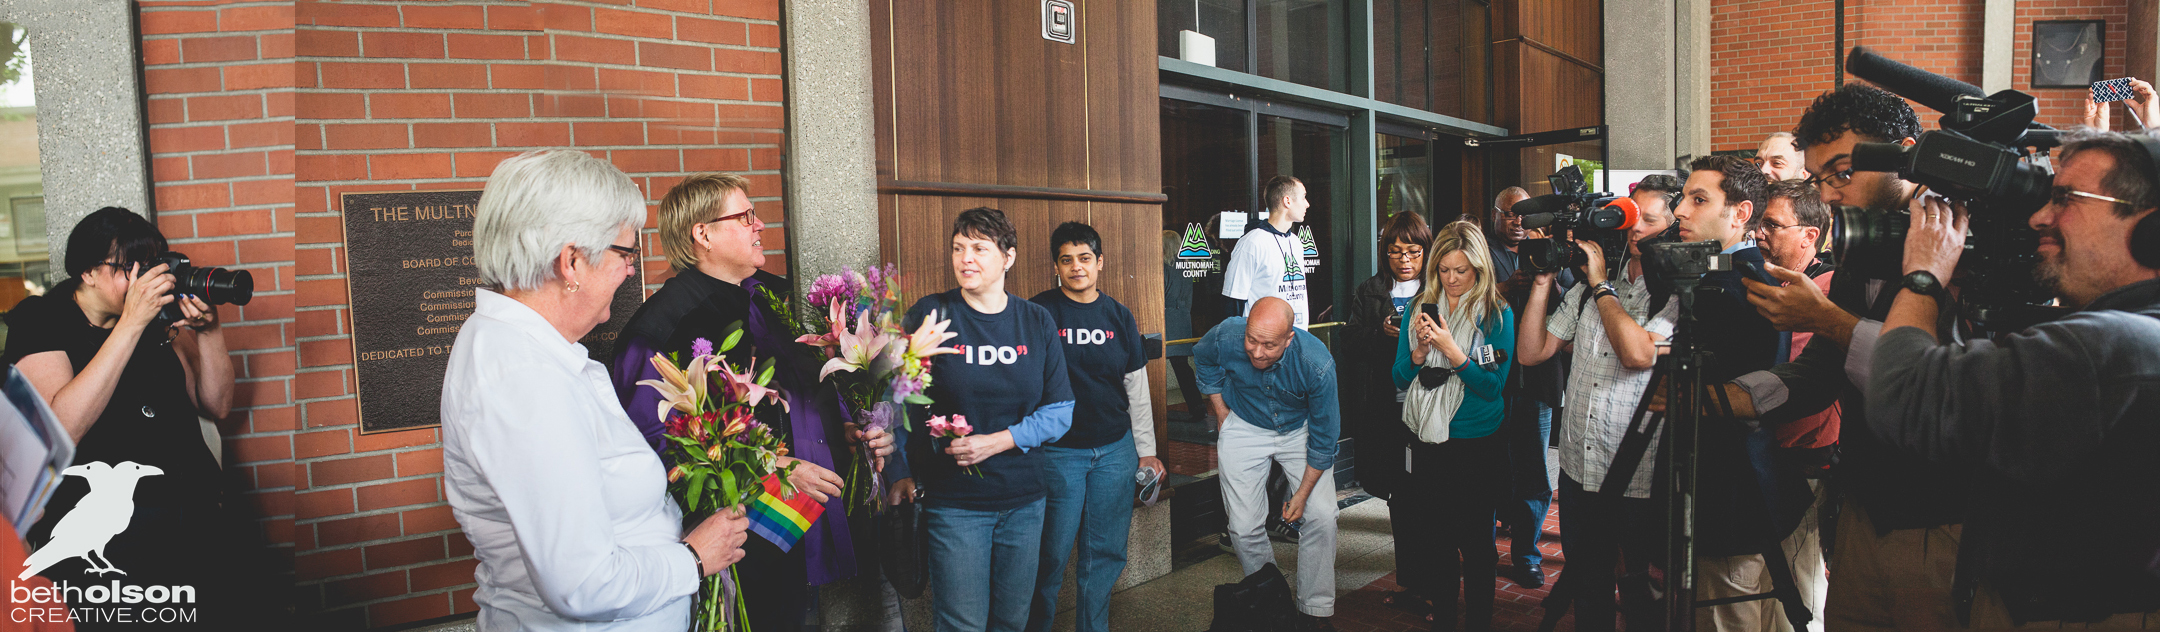 Oregon-Gay-Wedding-Ban-OverturnPano